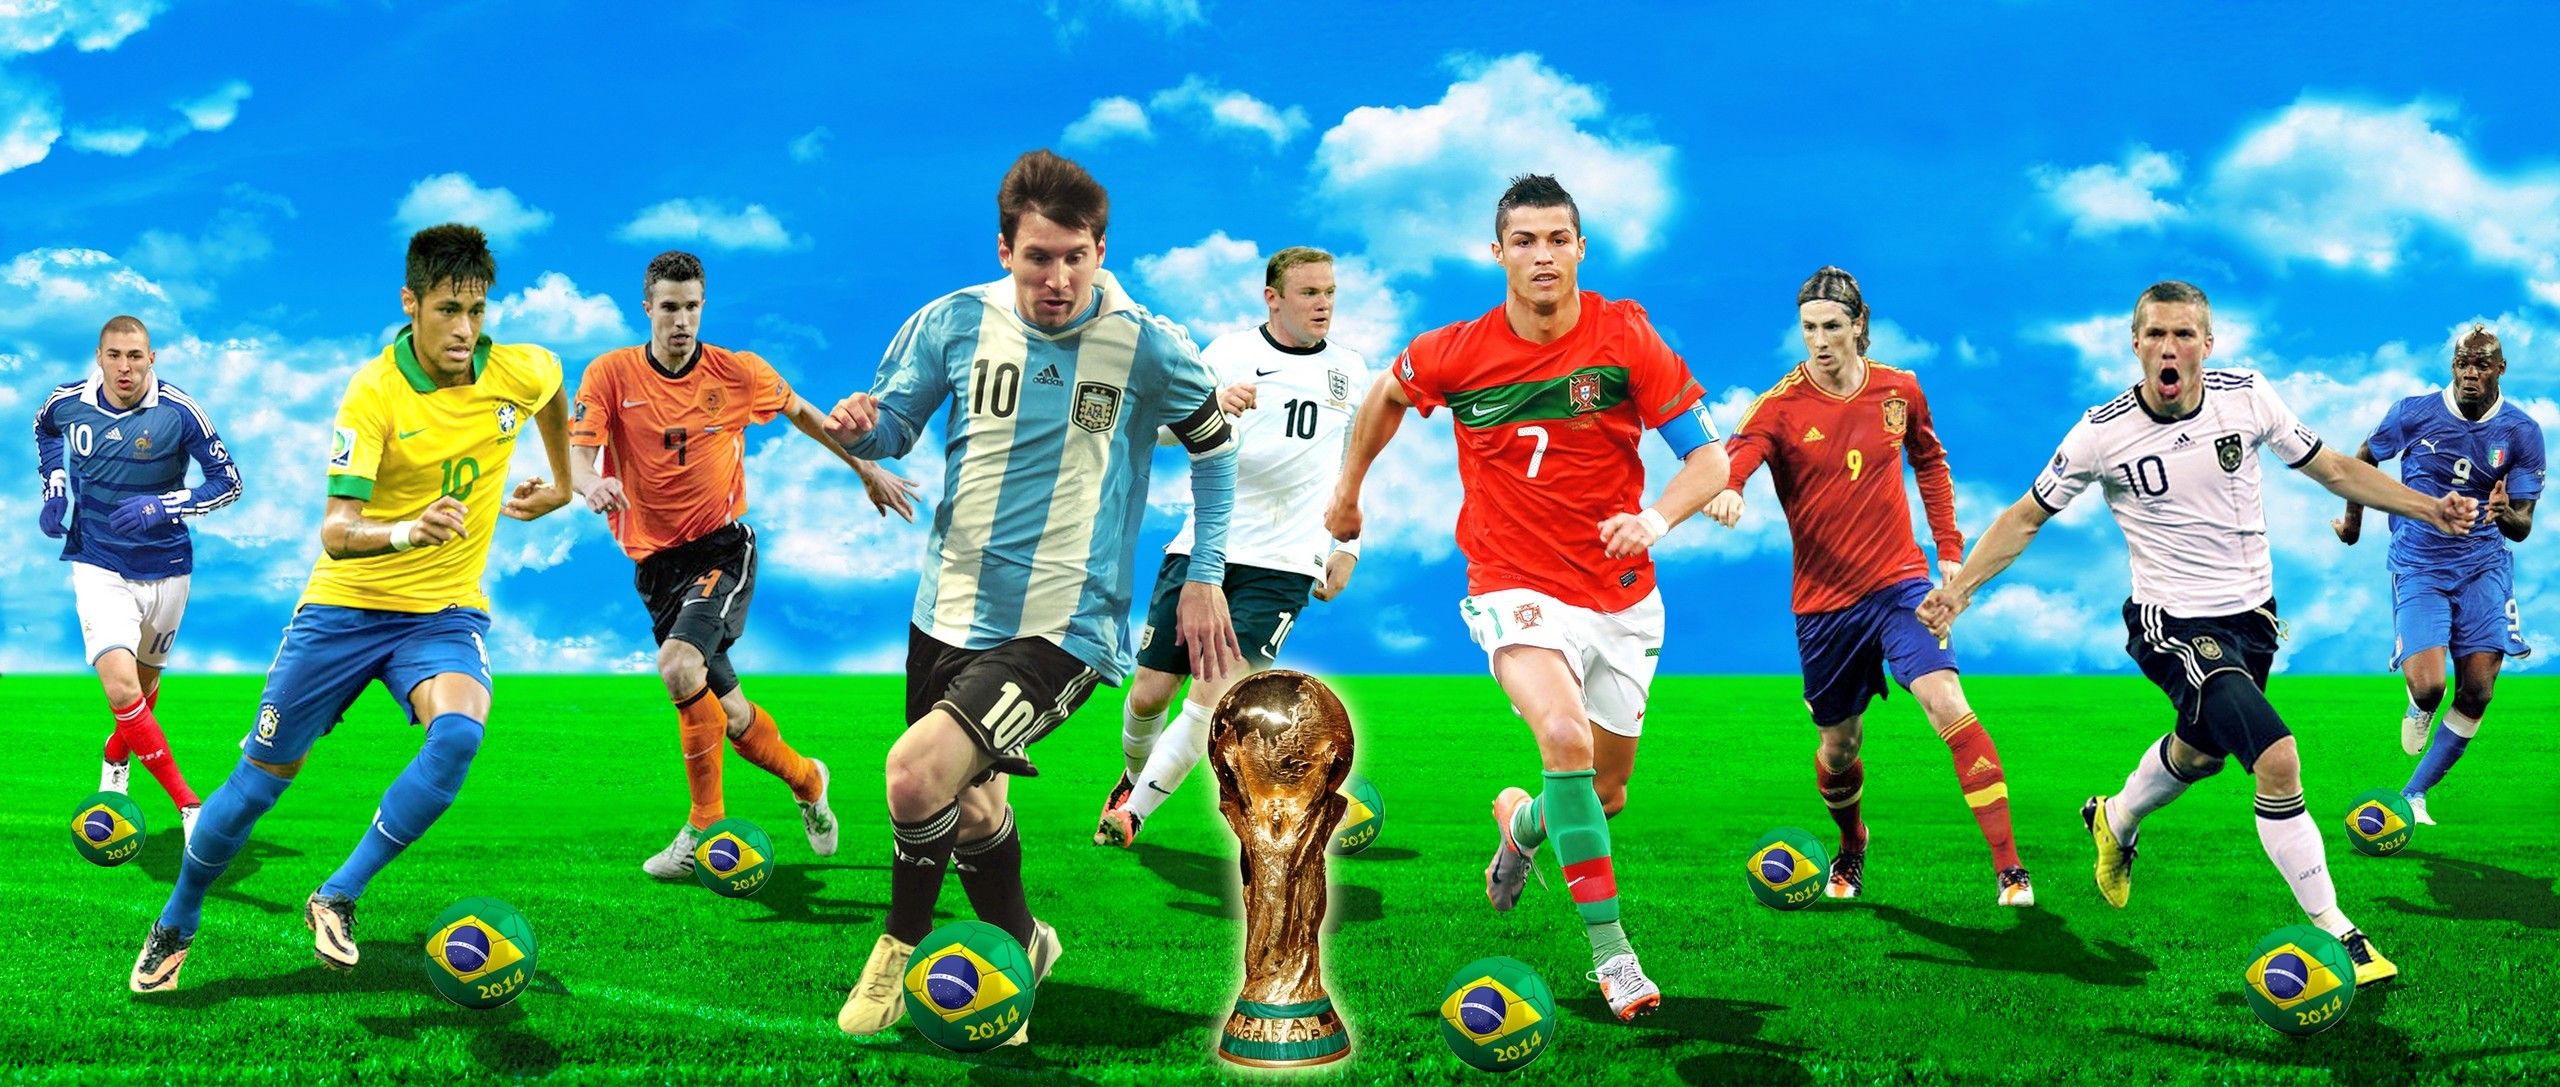 Res: 2560x1087, World Cup 2014 Football Wallpaper